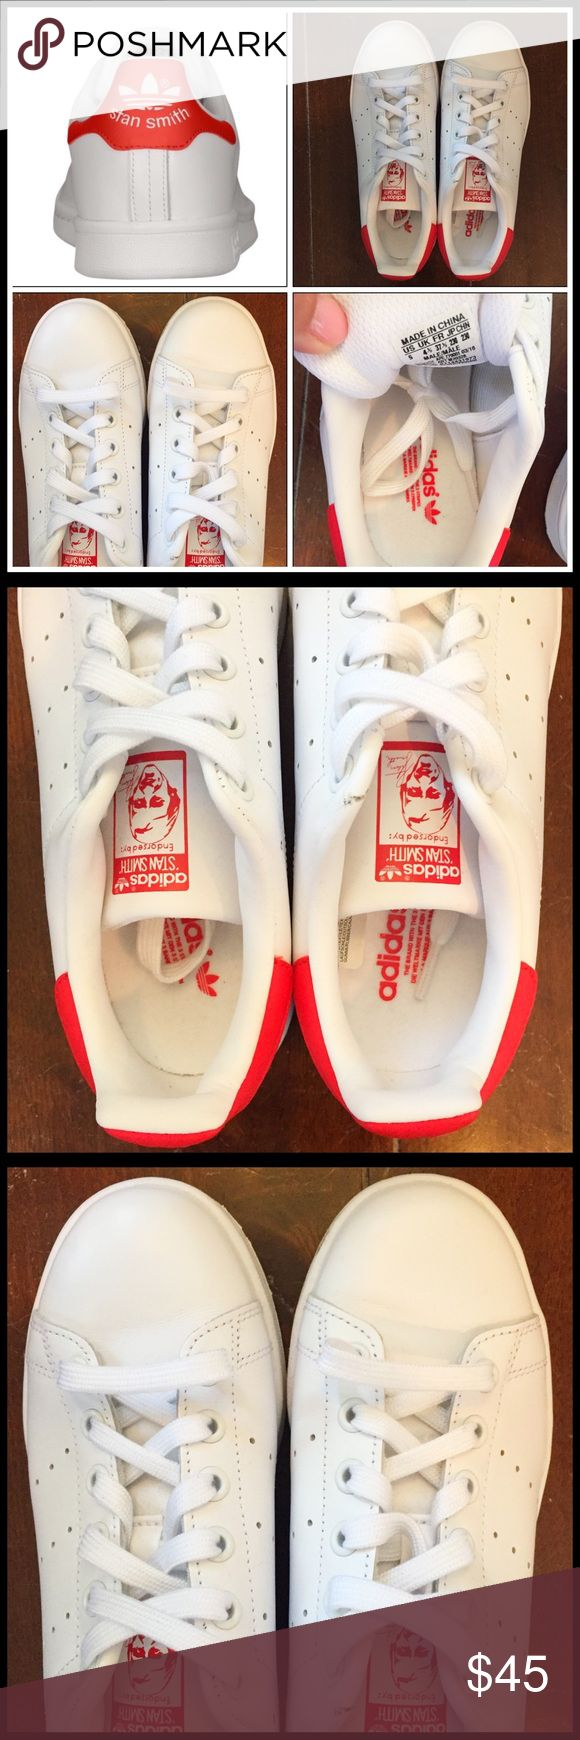 Classic Adidas Stan Smith in White/Collegiate Red! These will never go out of style. Men's 5, runs a bit big, I would try on at local store prior to buying these if you're not familiar with Stan Smith sizing. Perfect for summer! So cute. Store sample, worn indoors only. Great find! Will ship within 24 hours. Adidas Shoes Sneakers